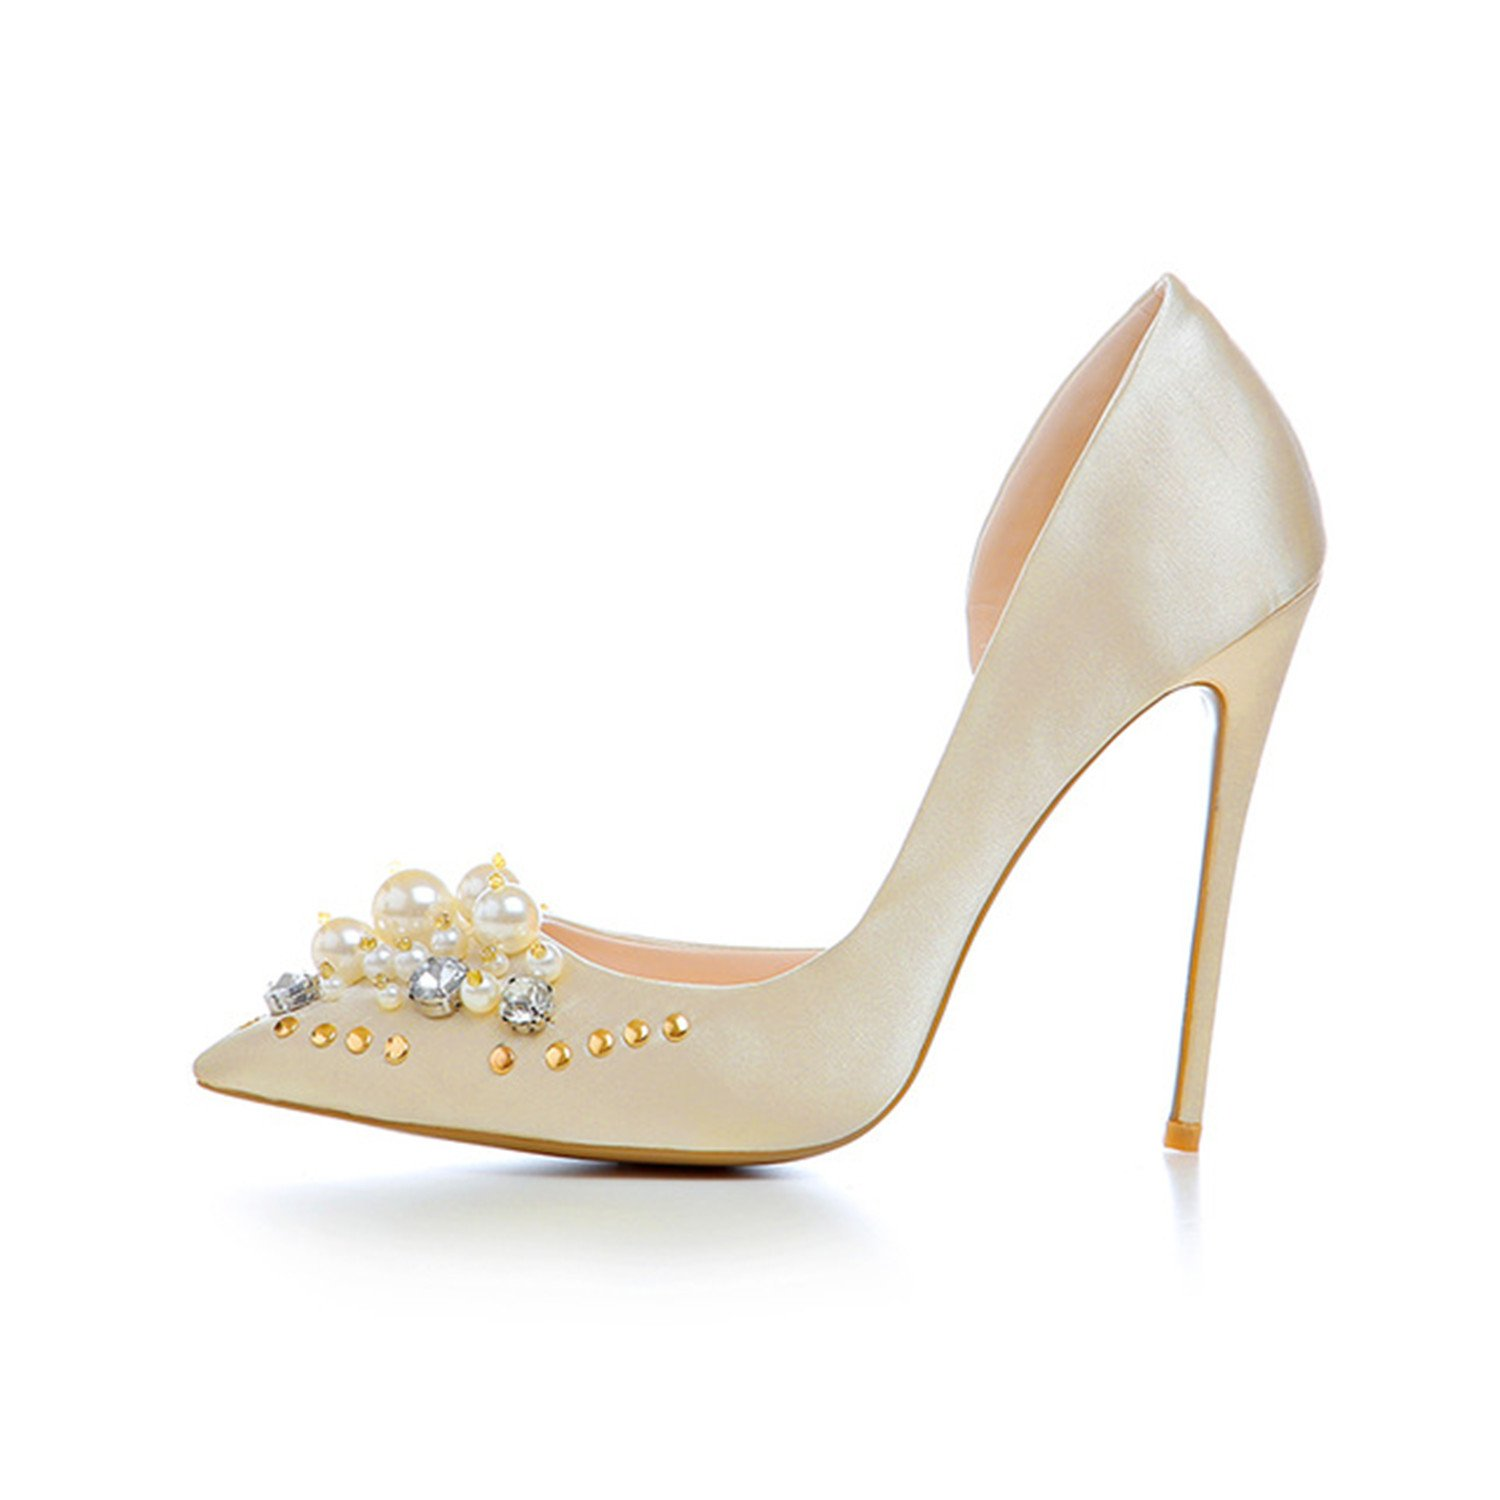 Sville Mary Extreme High Heels Party Stiletto Slip On Pearl Flower Wedding Dress Shoes